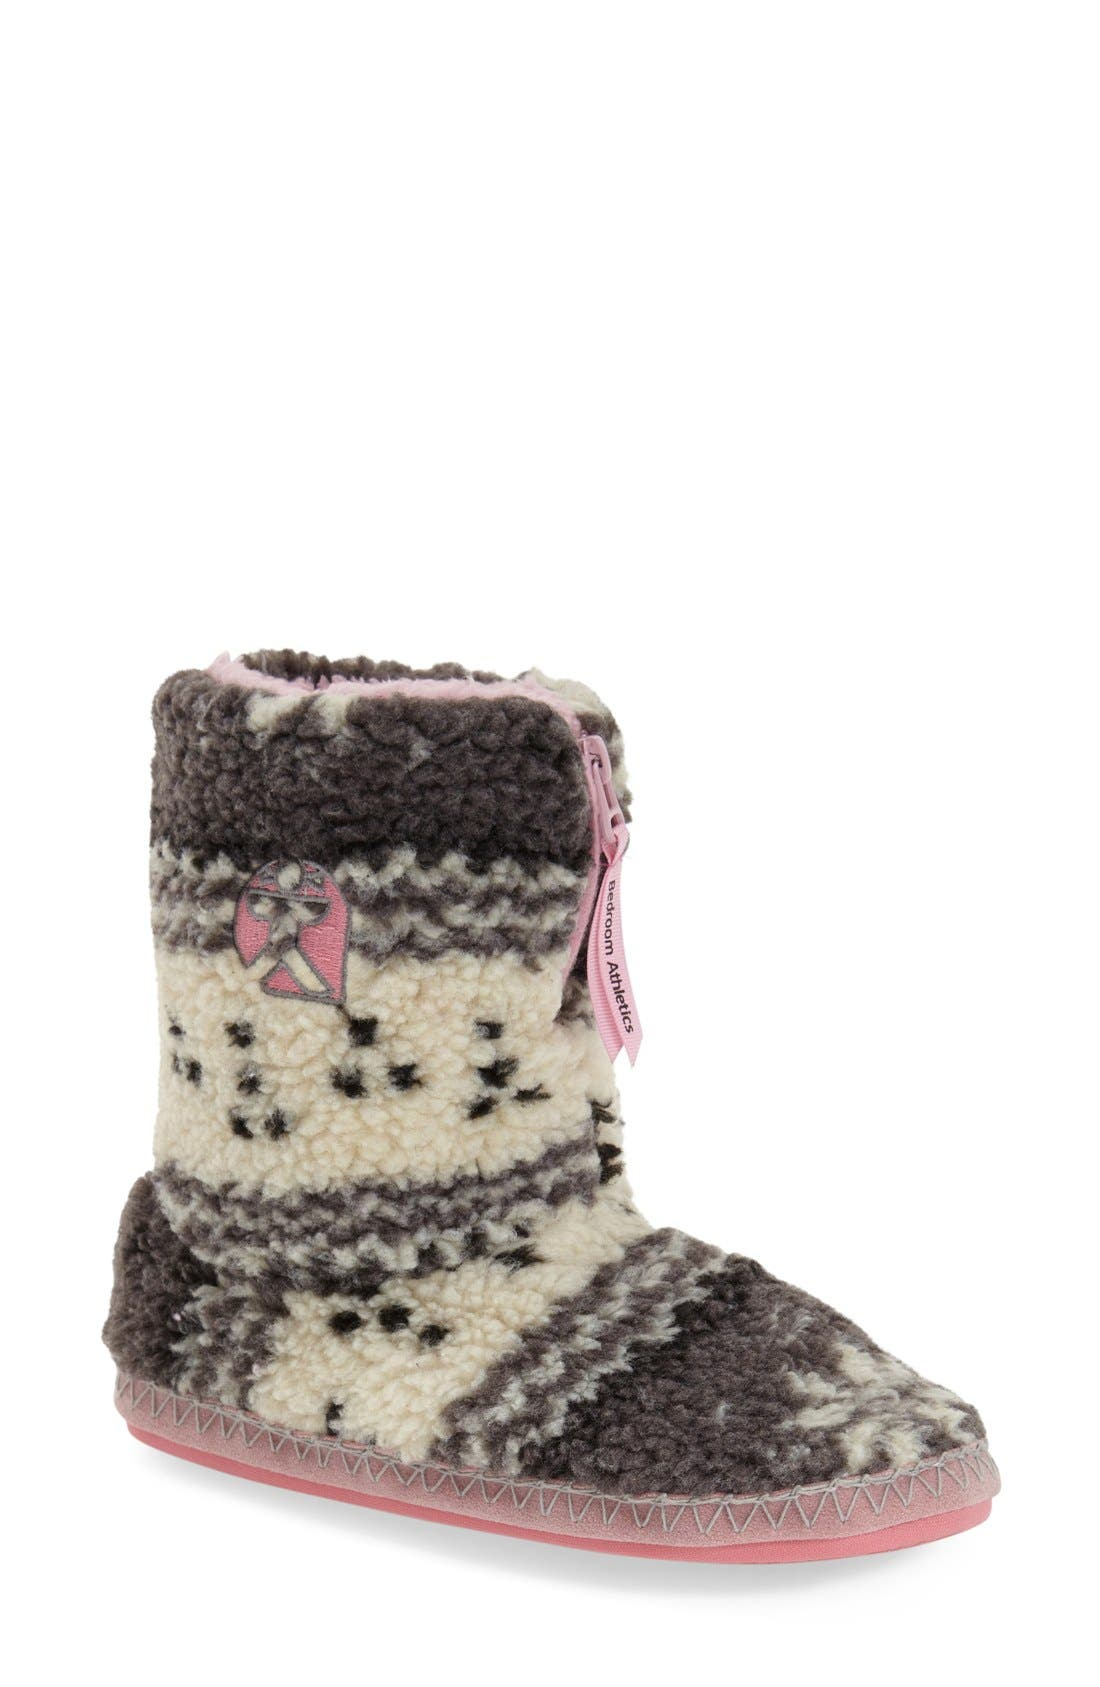 Main Image - Bedroom Athletics 'Jessica' Slipper Boot (Women)